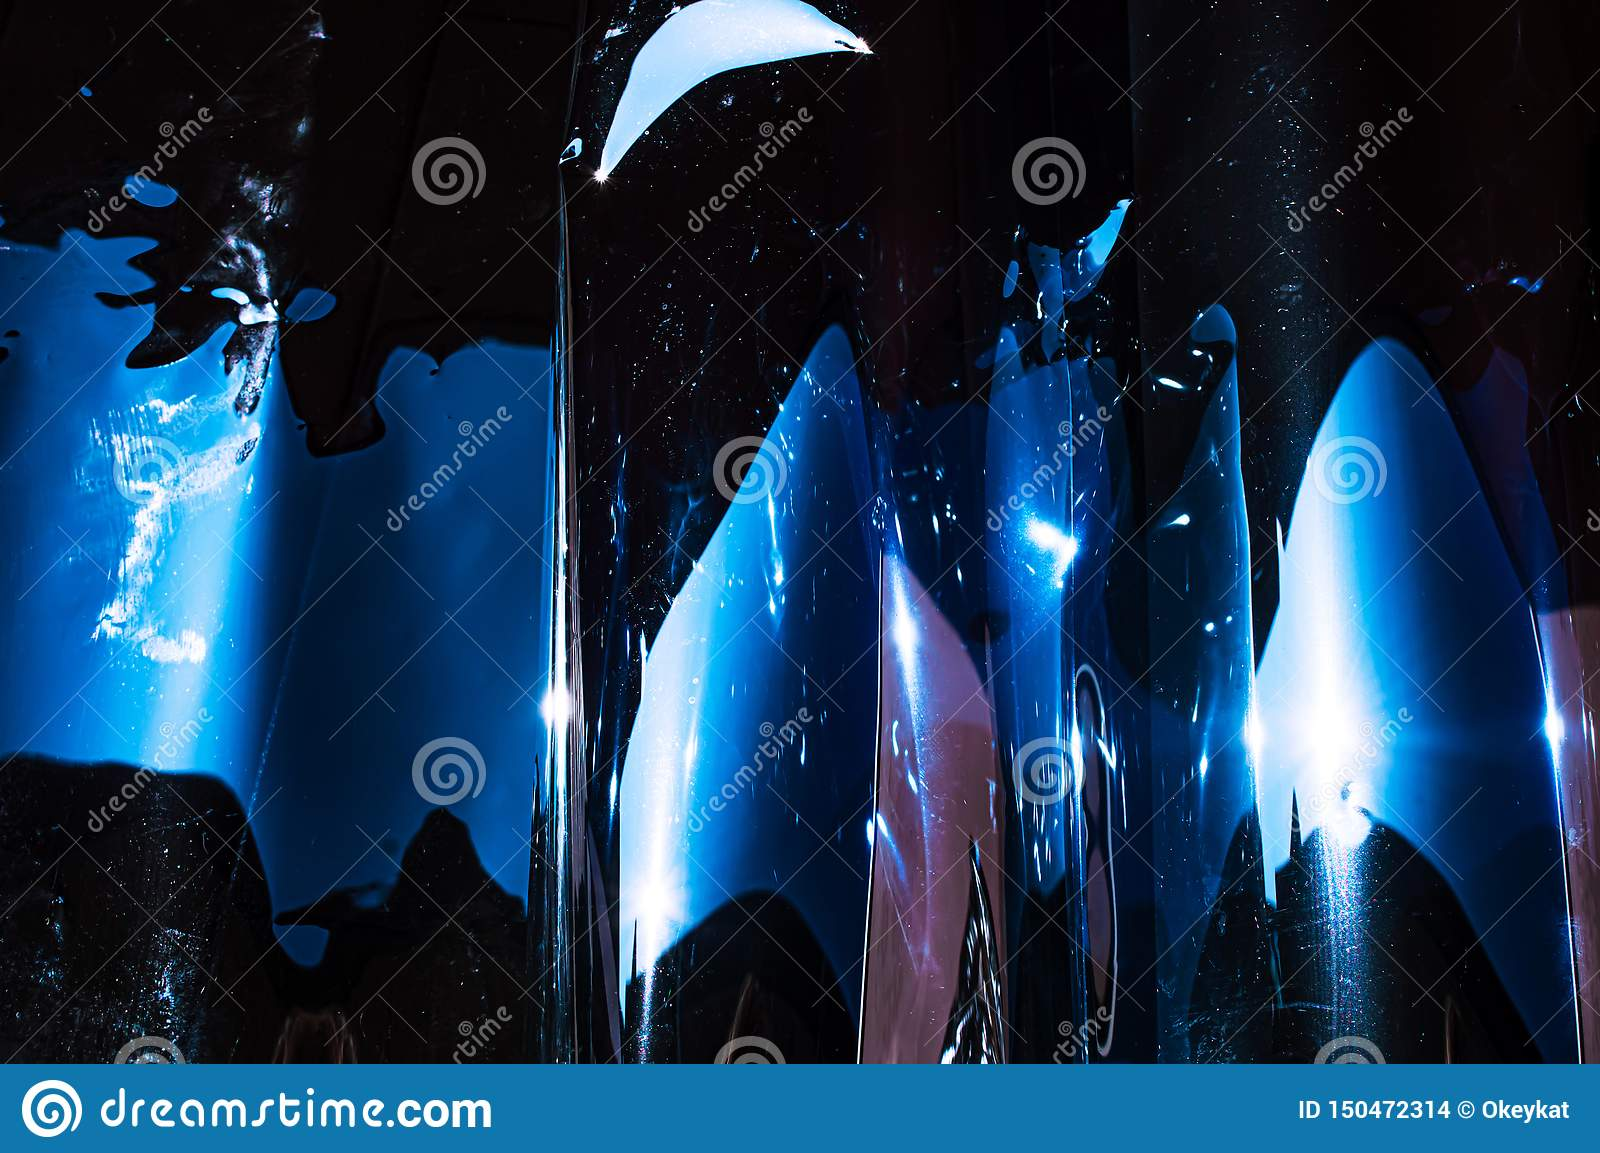 Holographic plastic wrinkled film with contrast sun light reflections. Blue tones with dark black shadows